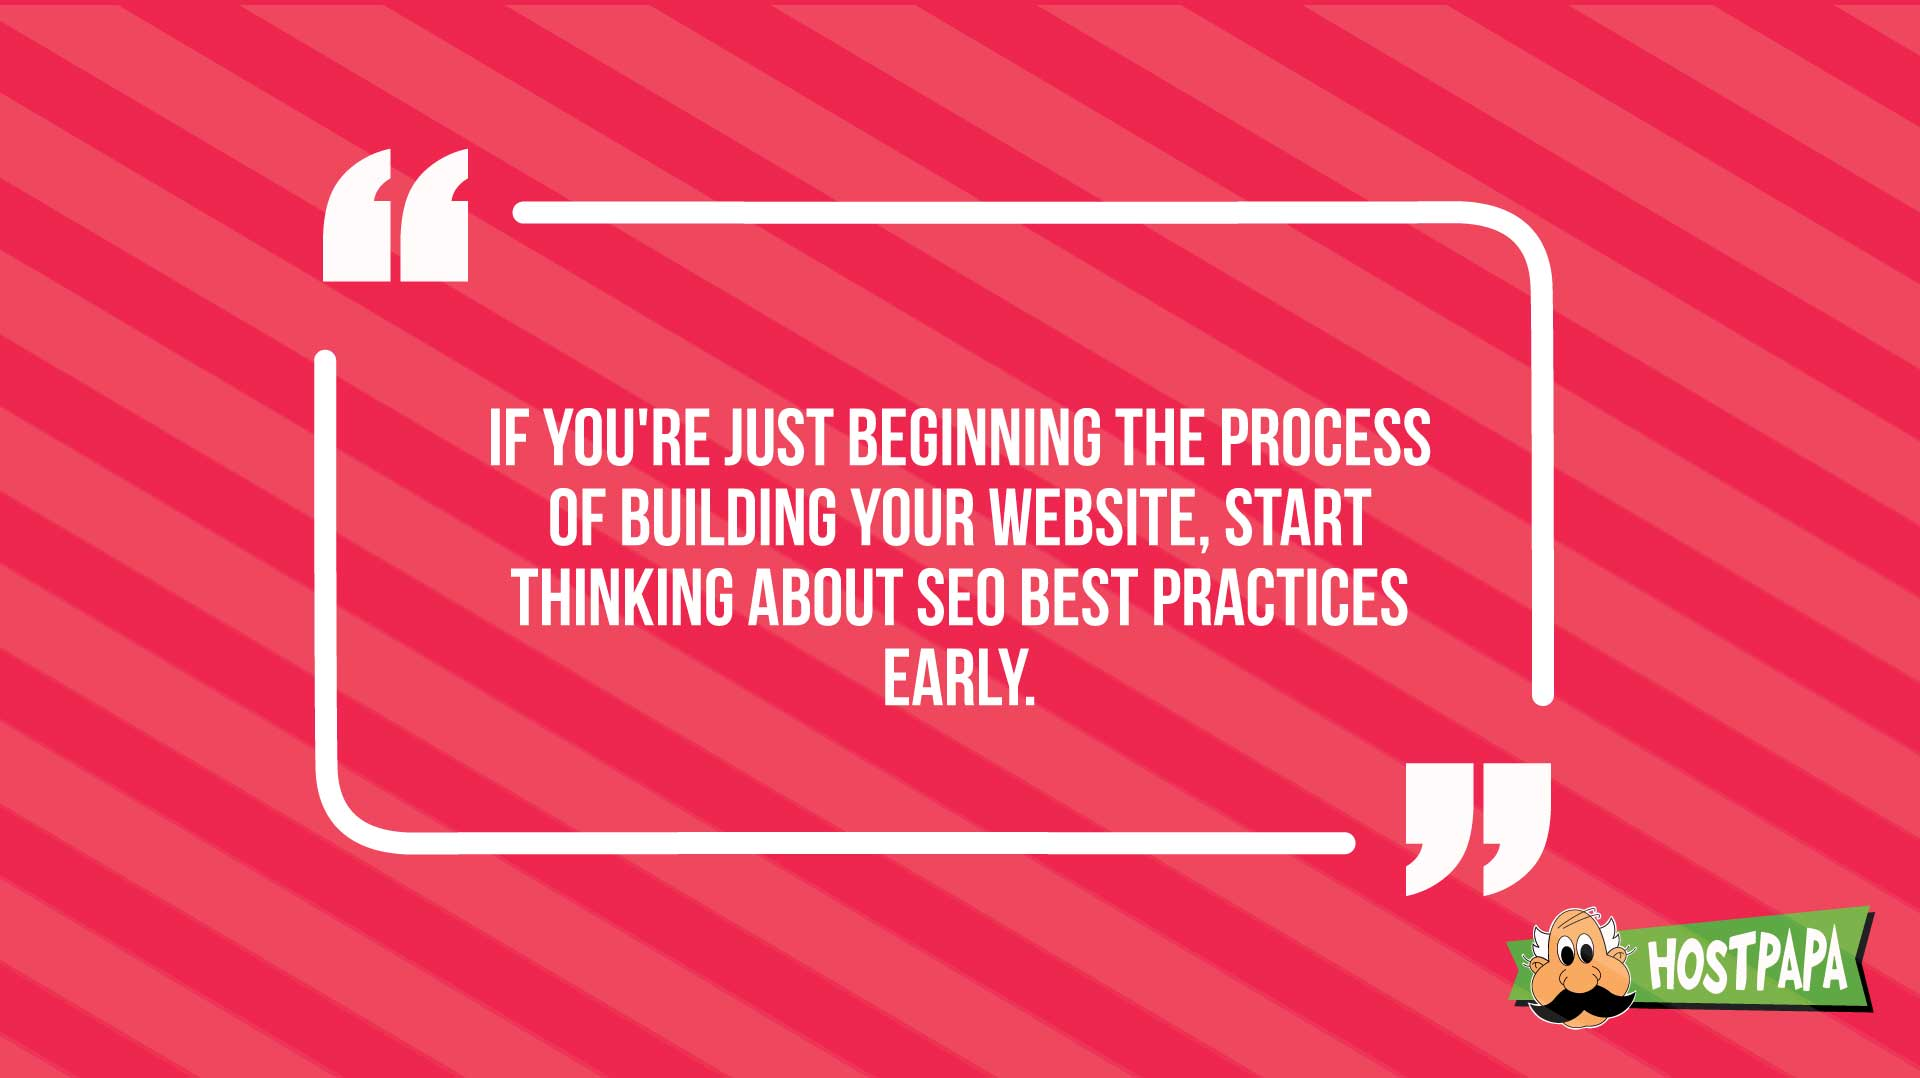 If you are beginning your website, think about seo best practices